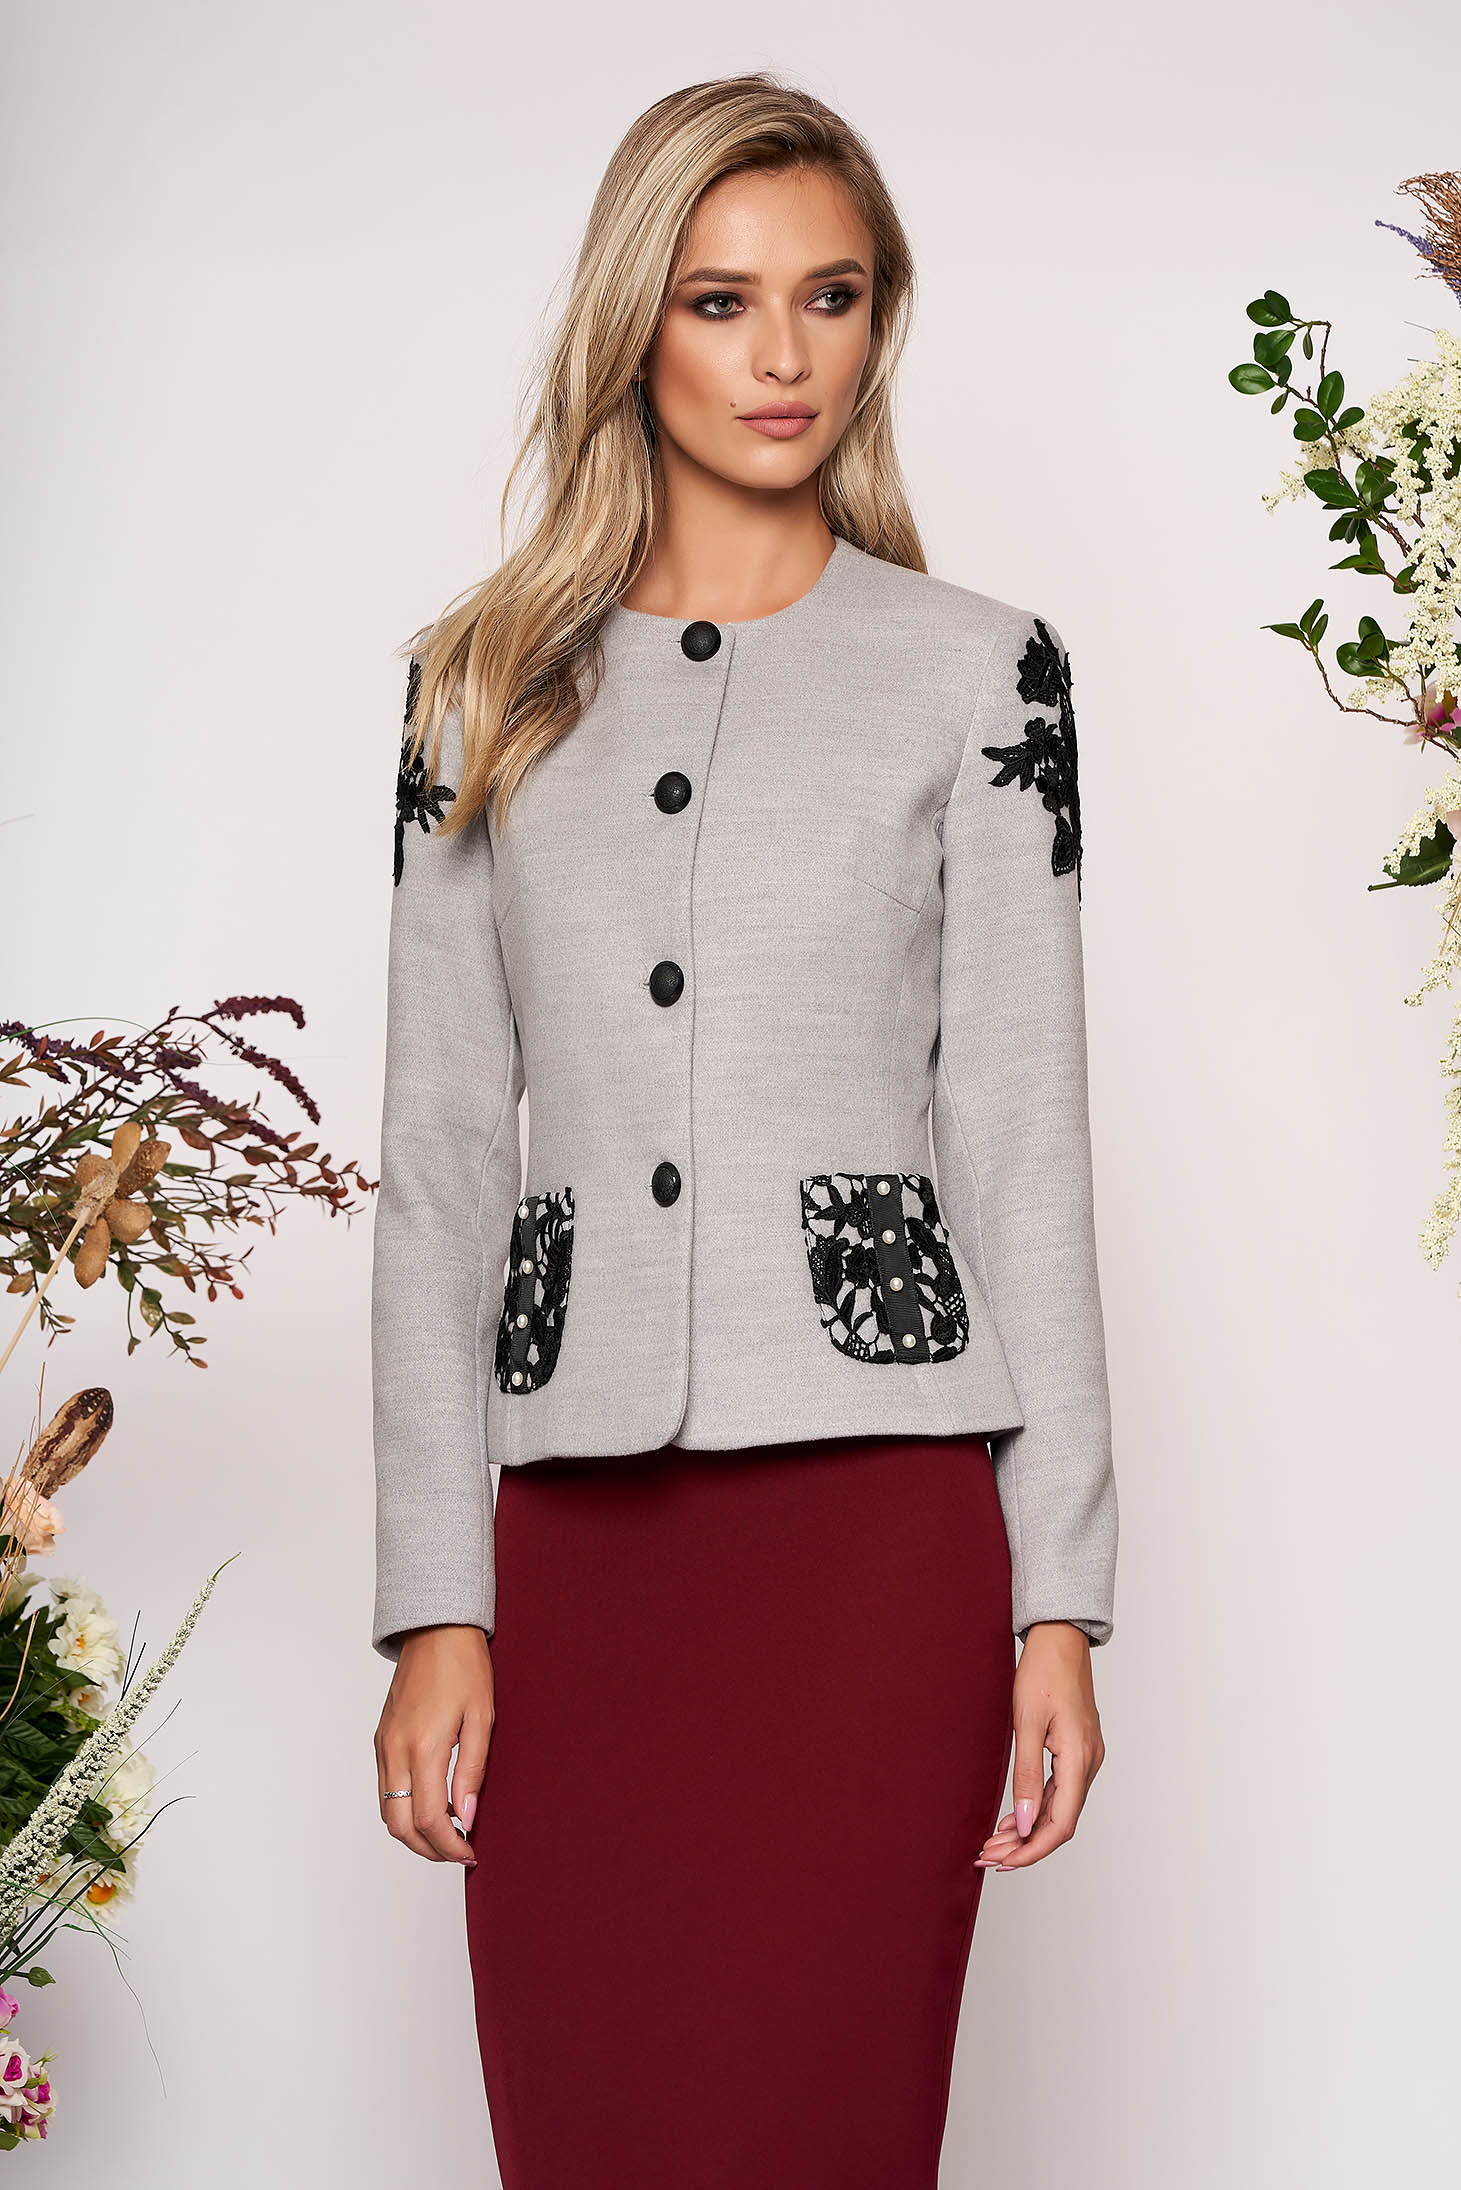 Grey jacket occasional short cut tented long sleeve thick fabric with lace details with pearls